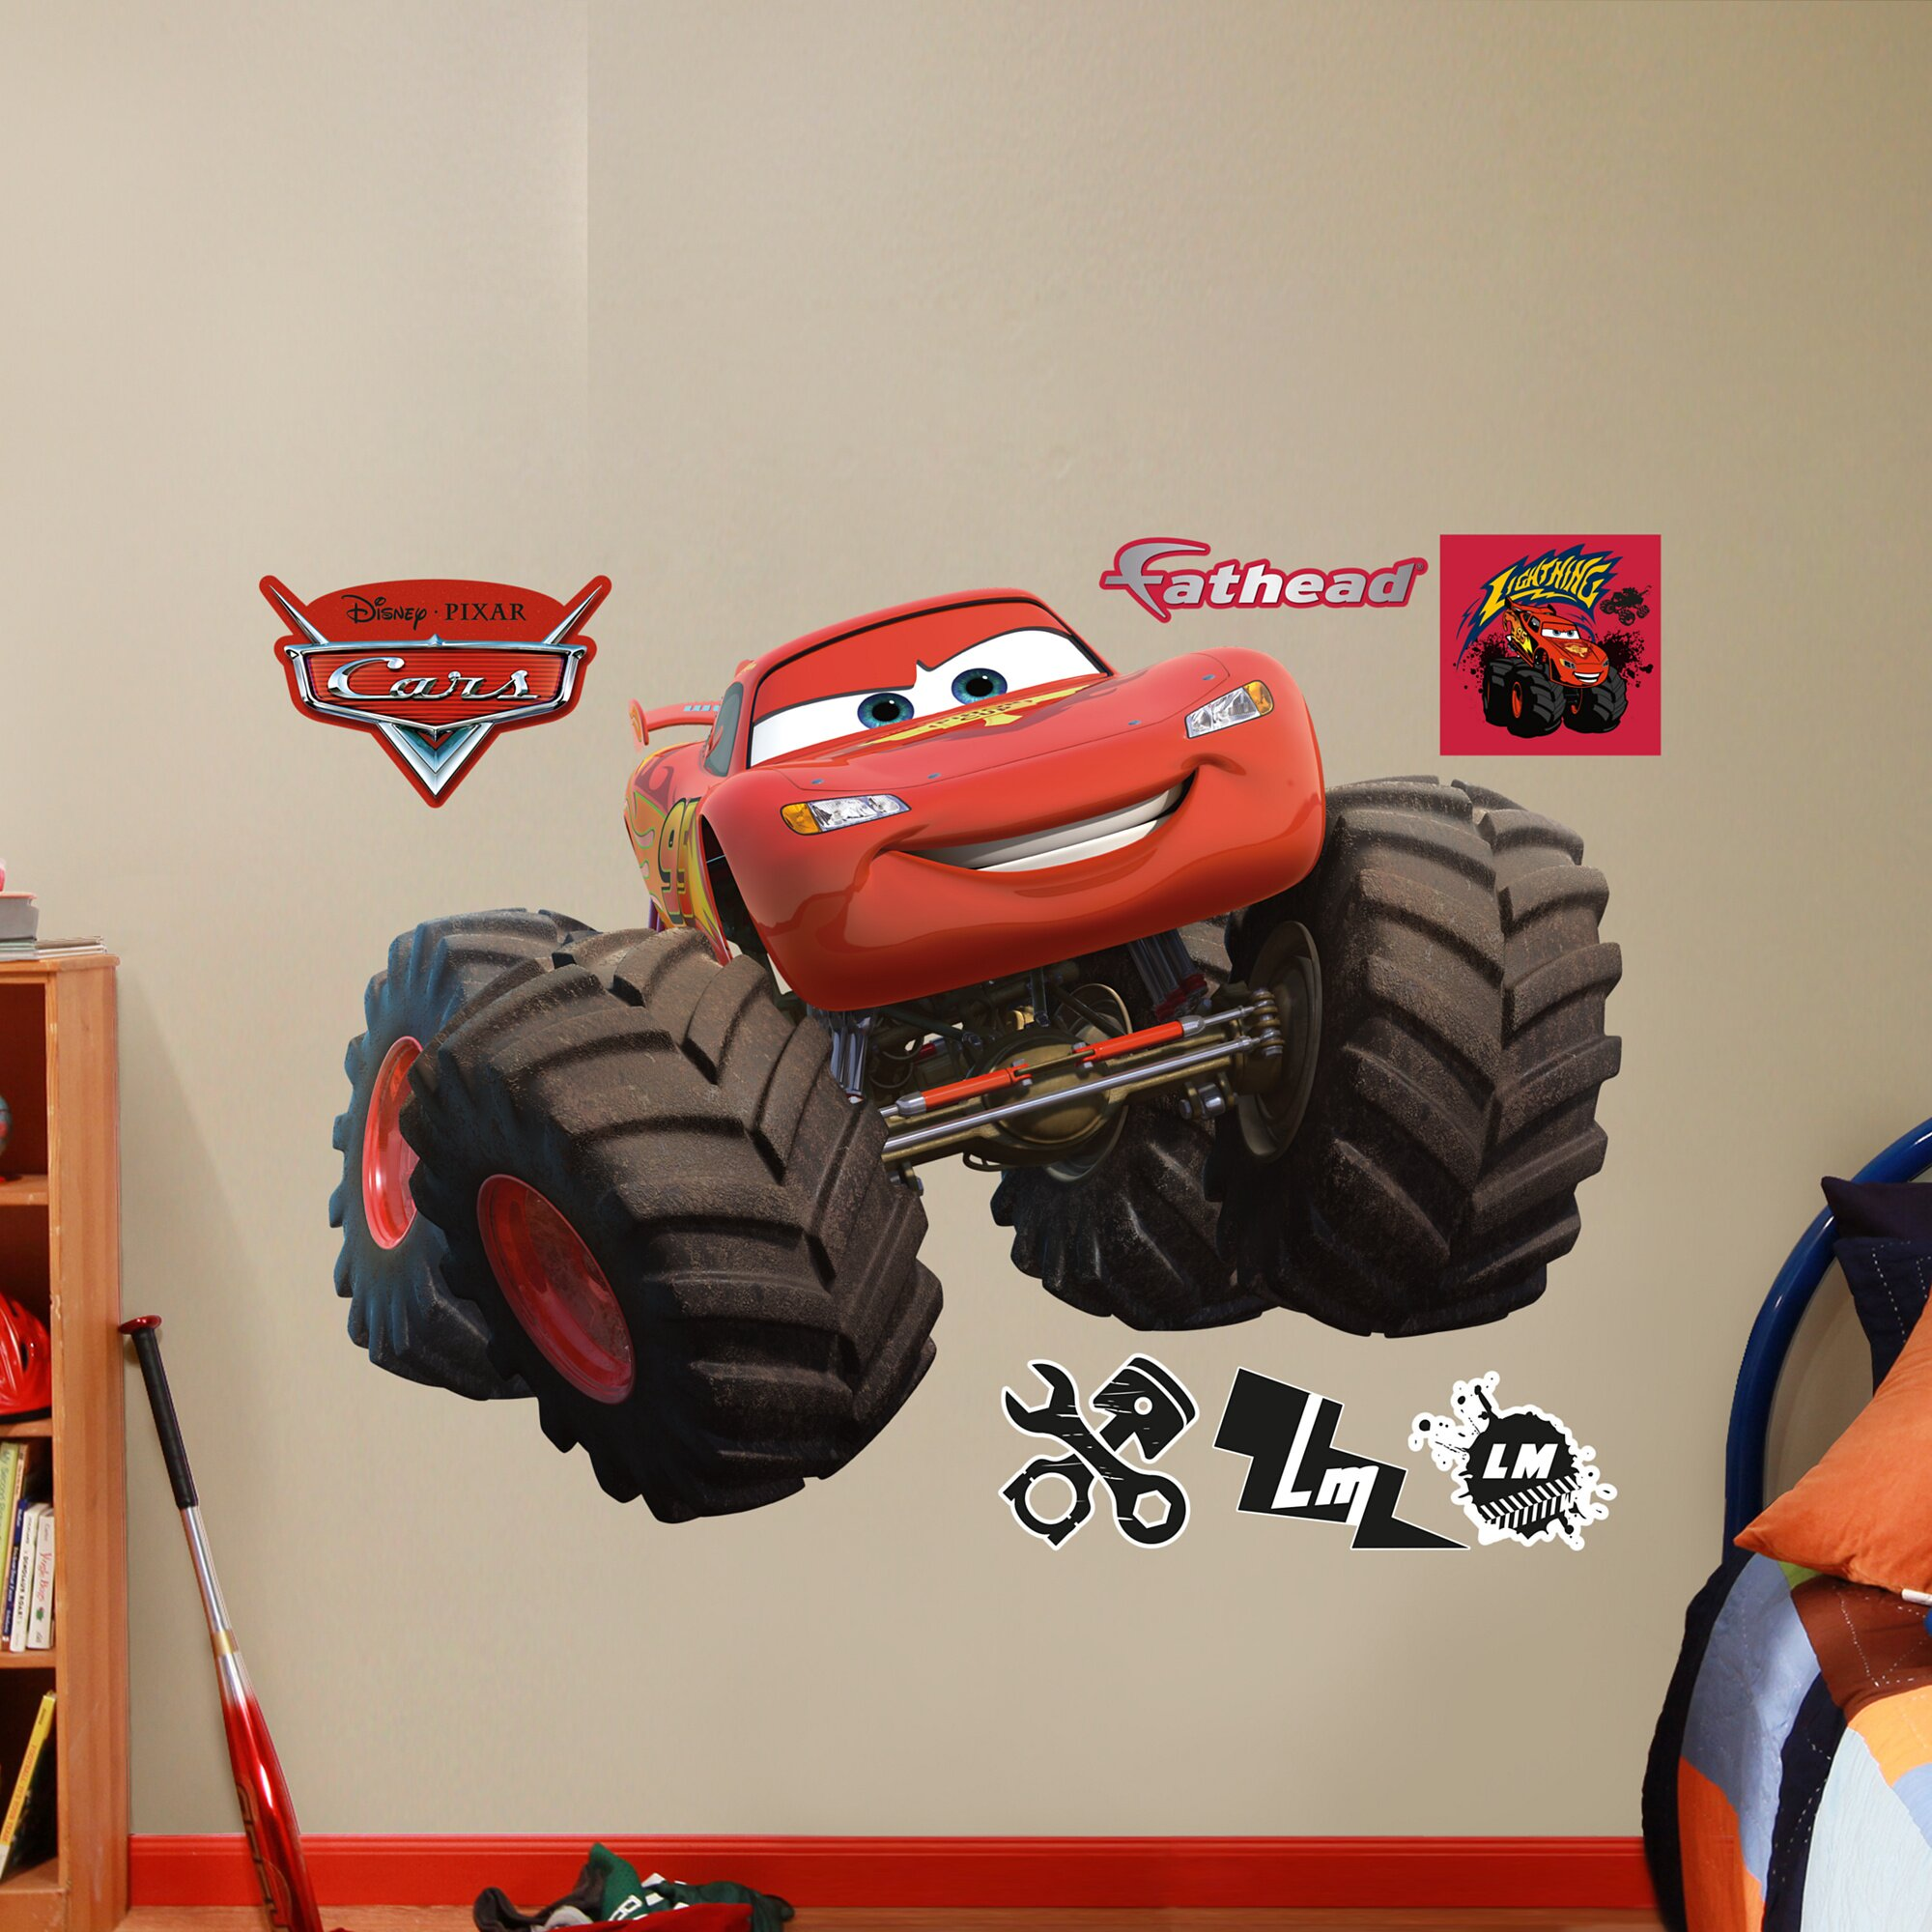 Fathead RealBig Disney Cars Monster Trucks Lightning McQueen Wall Decal